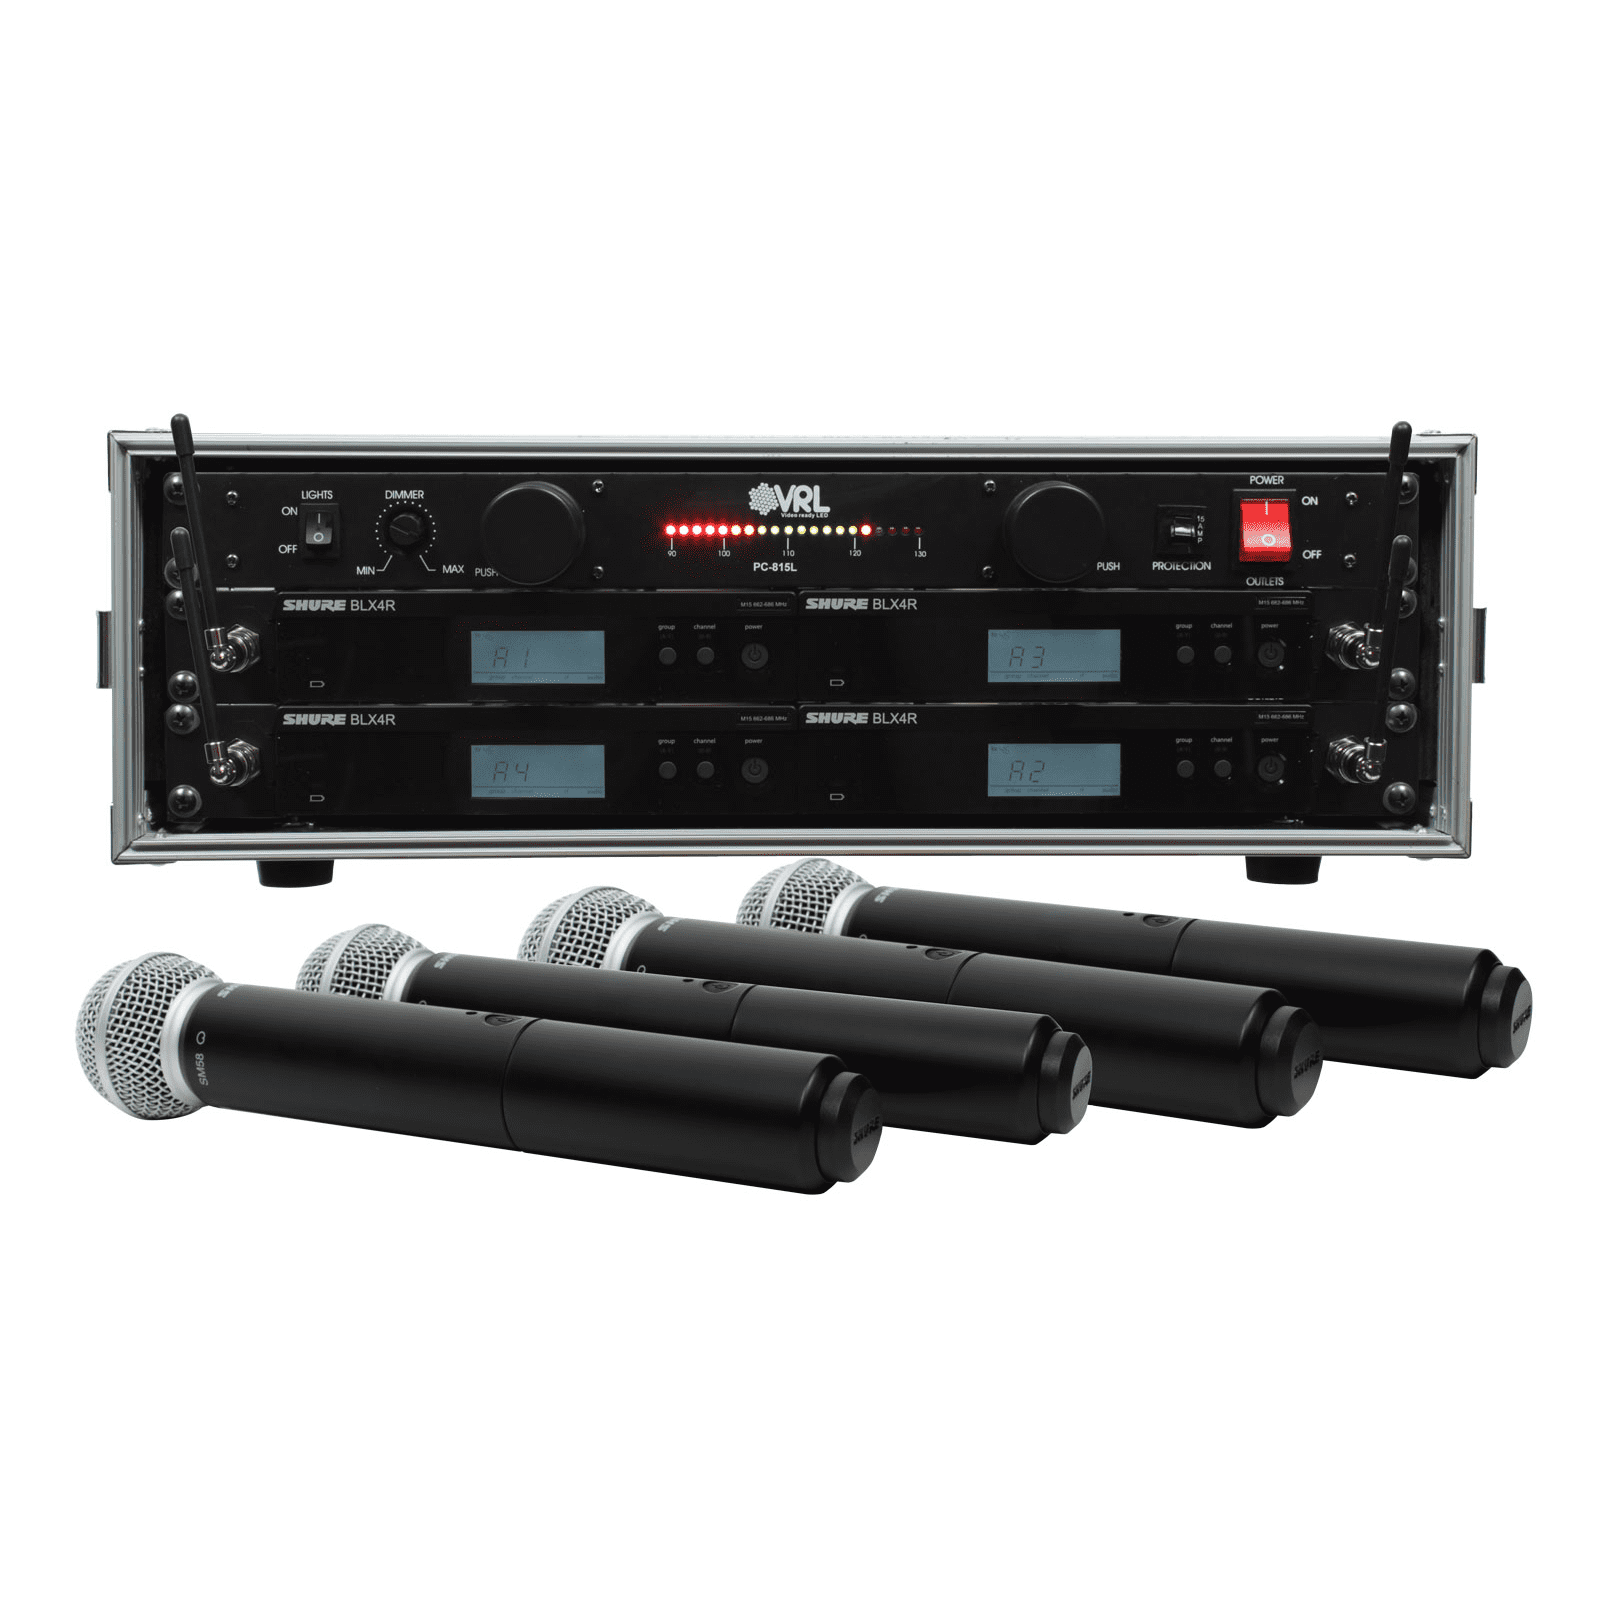 Shure BLX24R SM58 4 Pack Wireless Handheld Mic System with VRL Power Supply by